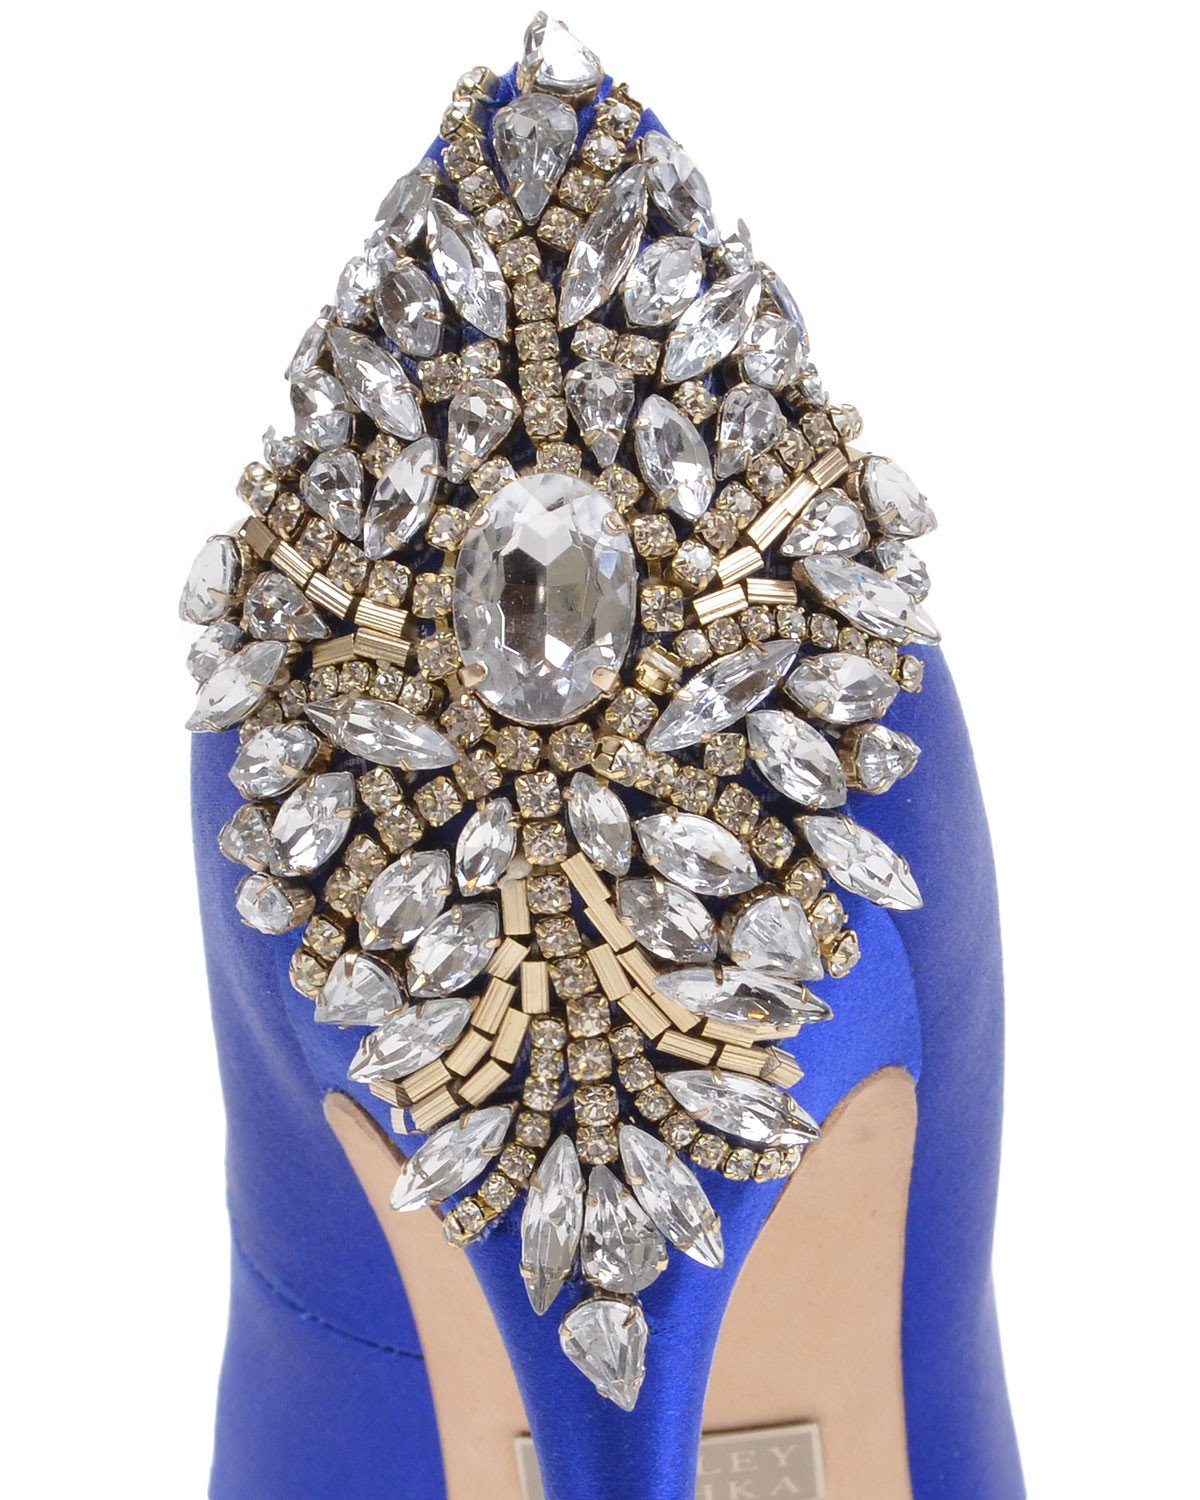 Badgley Mischka Blue Bridal Shoes - Kiara - Sapphire